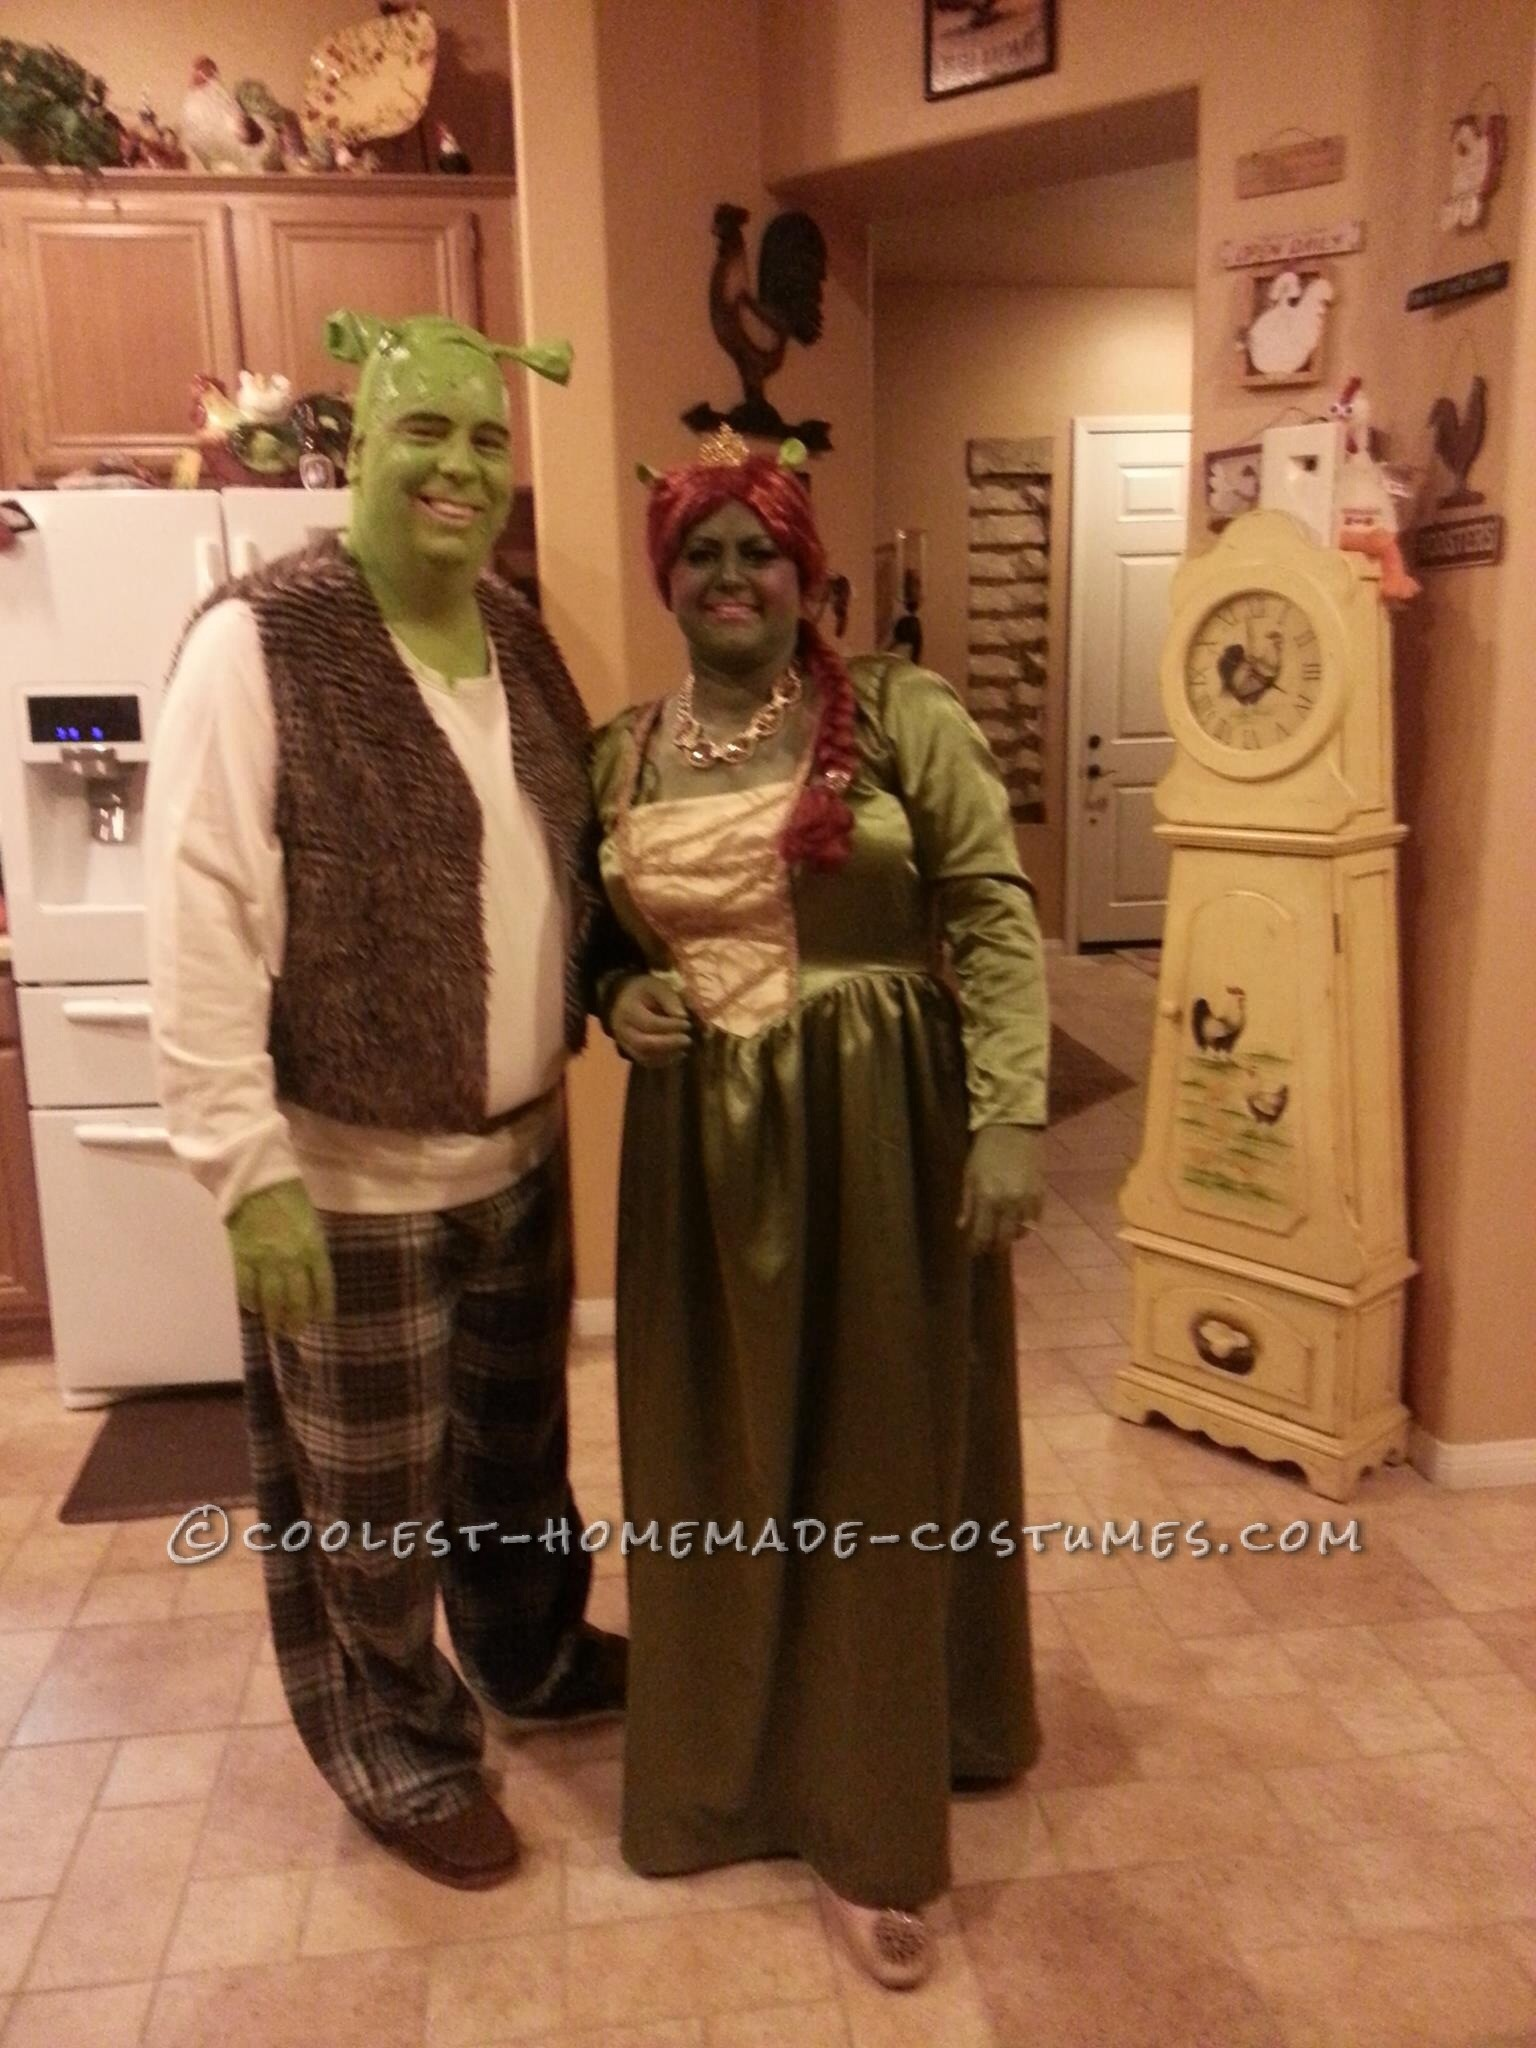 Cool Homemade Couple Costume: Shrek and Fiona Forever!